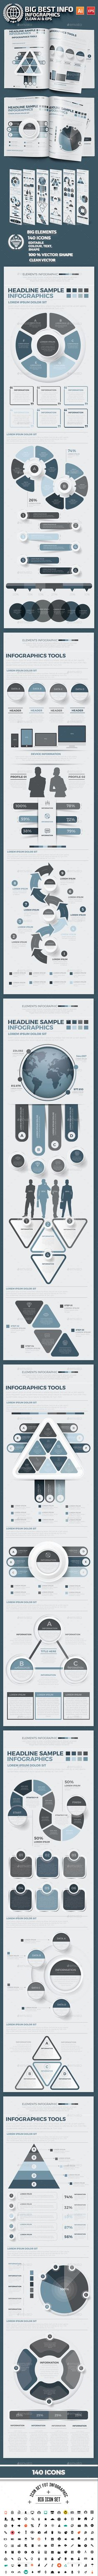 Big Best Infographics Design — Vector EPS #timeline #simple • Available here → https://graphicriver.net/item/big-best-infographics-design/17720232?ref=pxcr